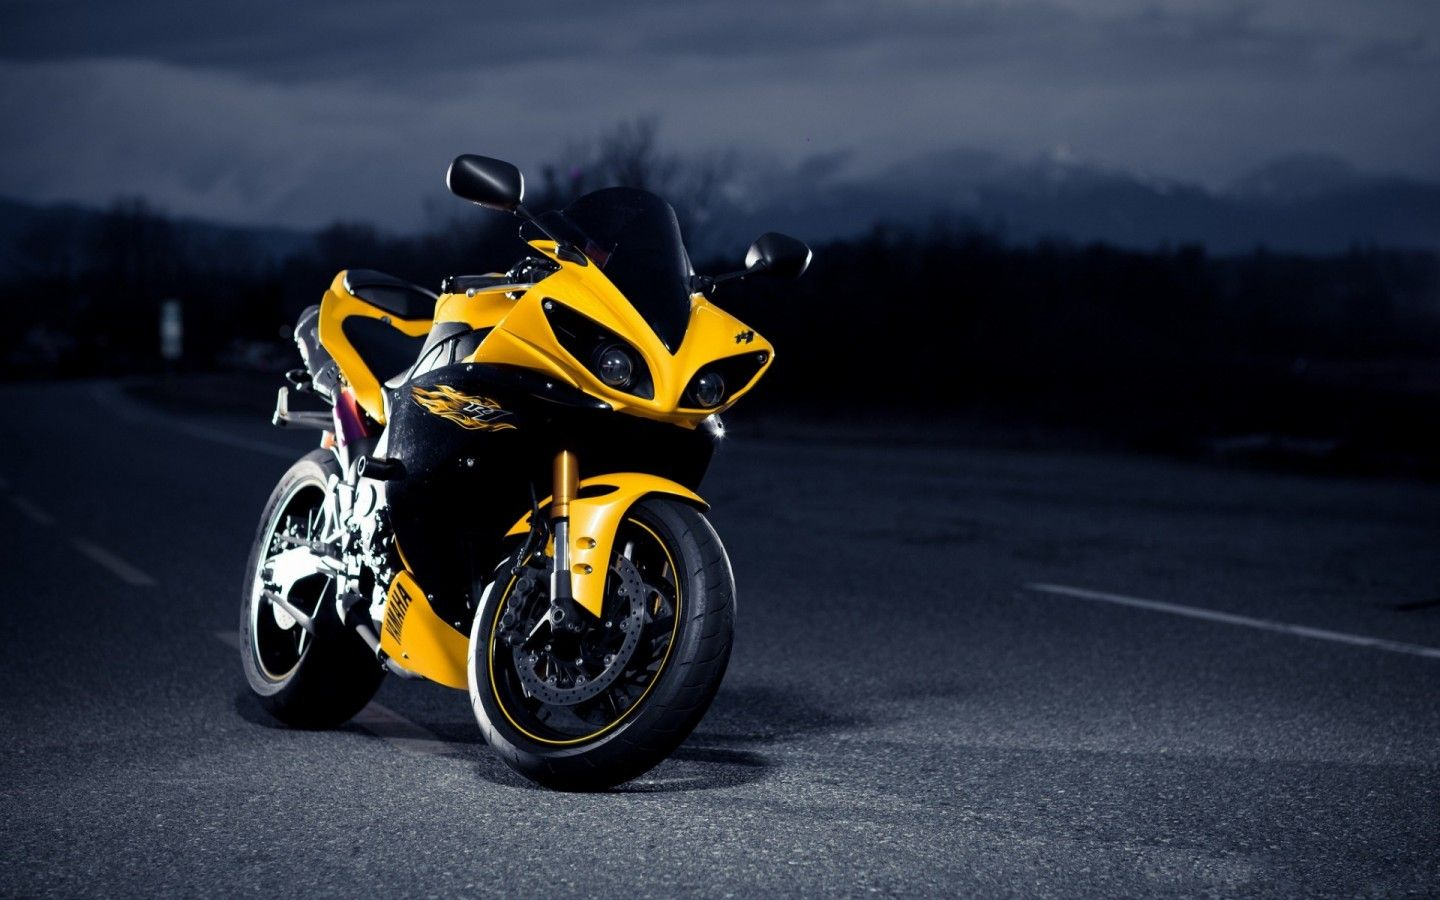 Sport Super Yamaha Bike New Hd Wallpaper Free Download Yamaha